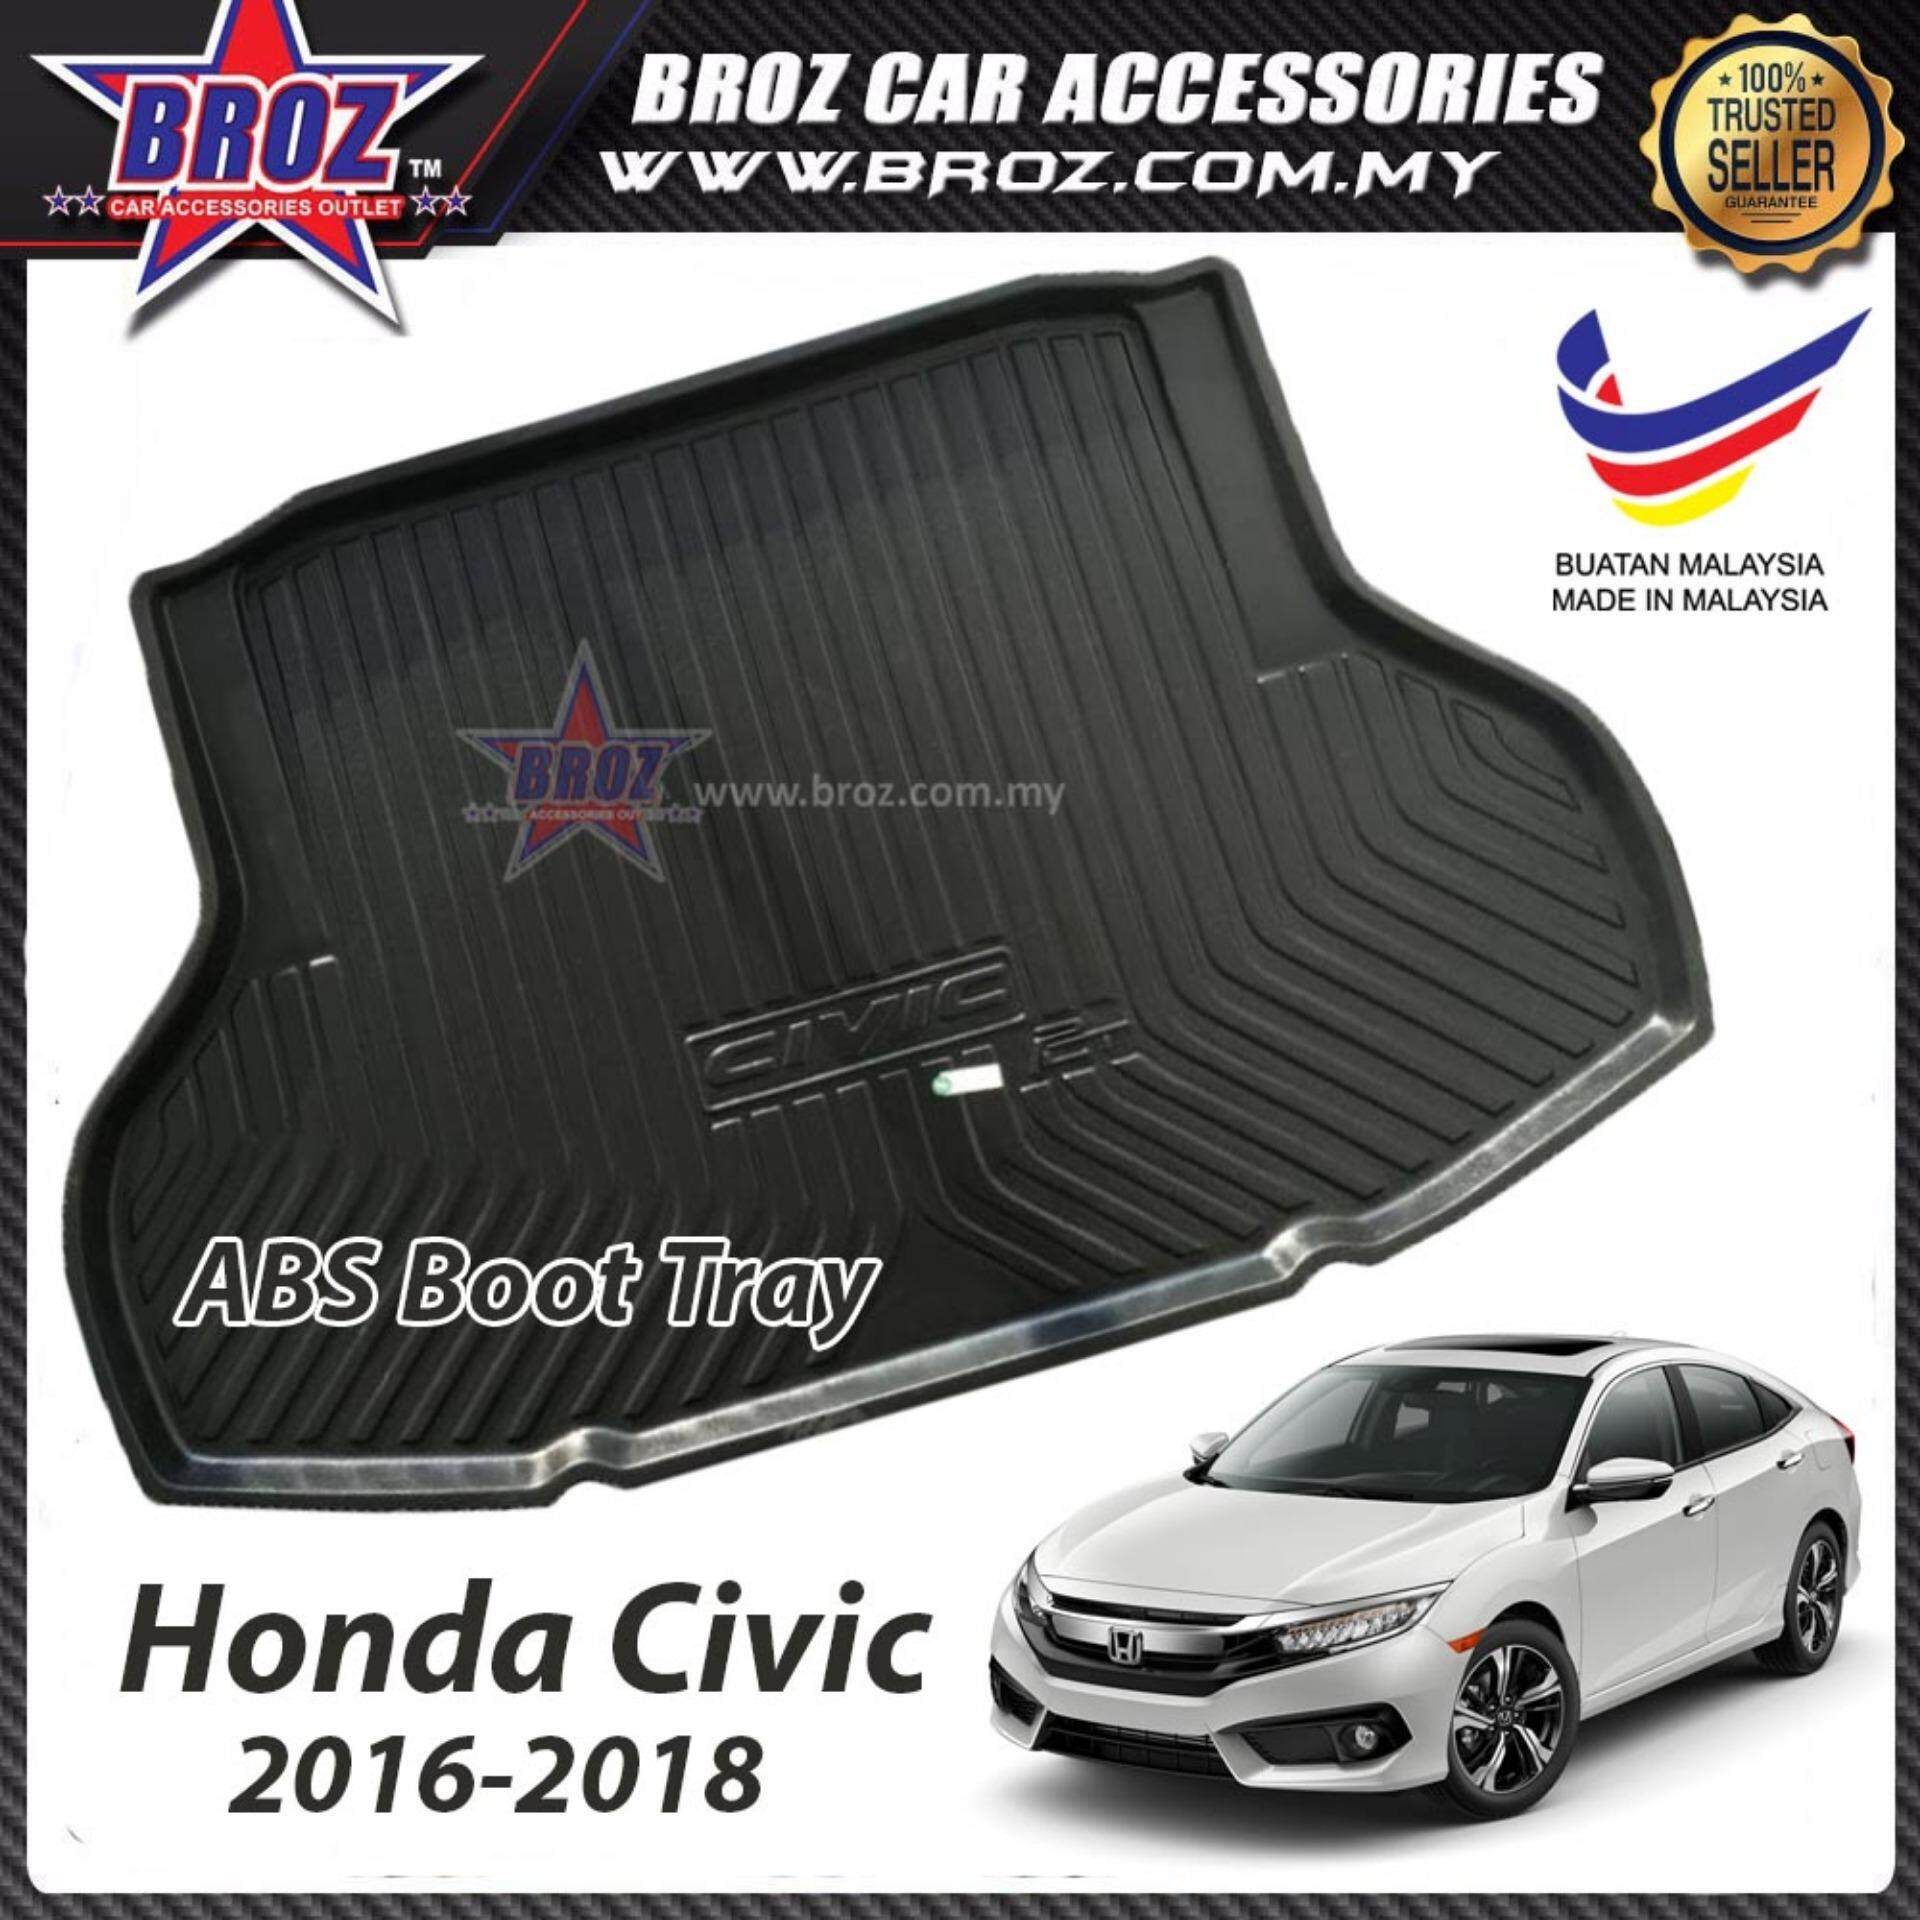 Honda Civic 2016-2018 ABS Car Rear Boot Trunk Tray